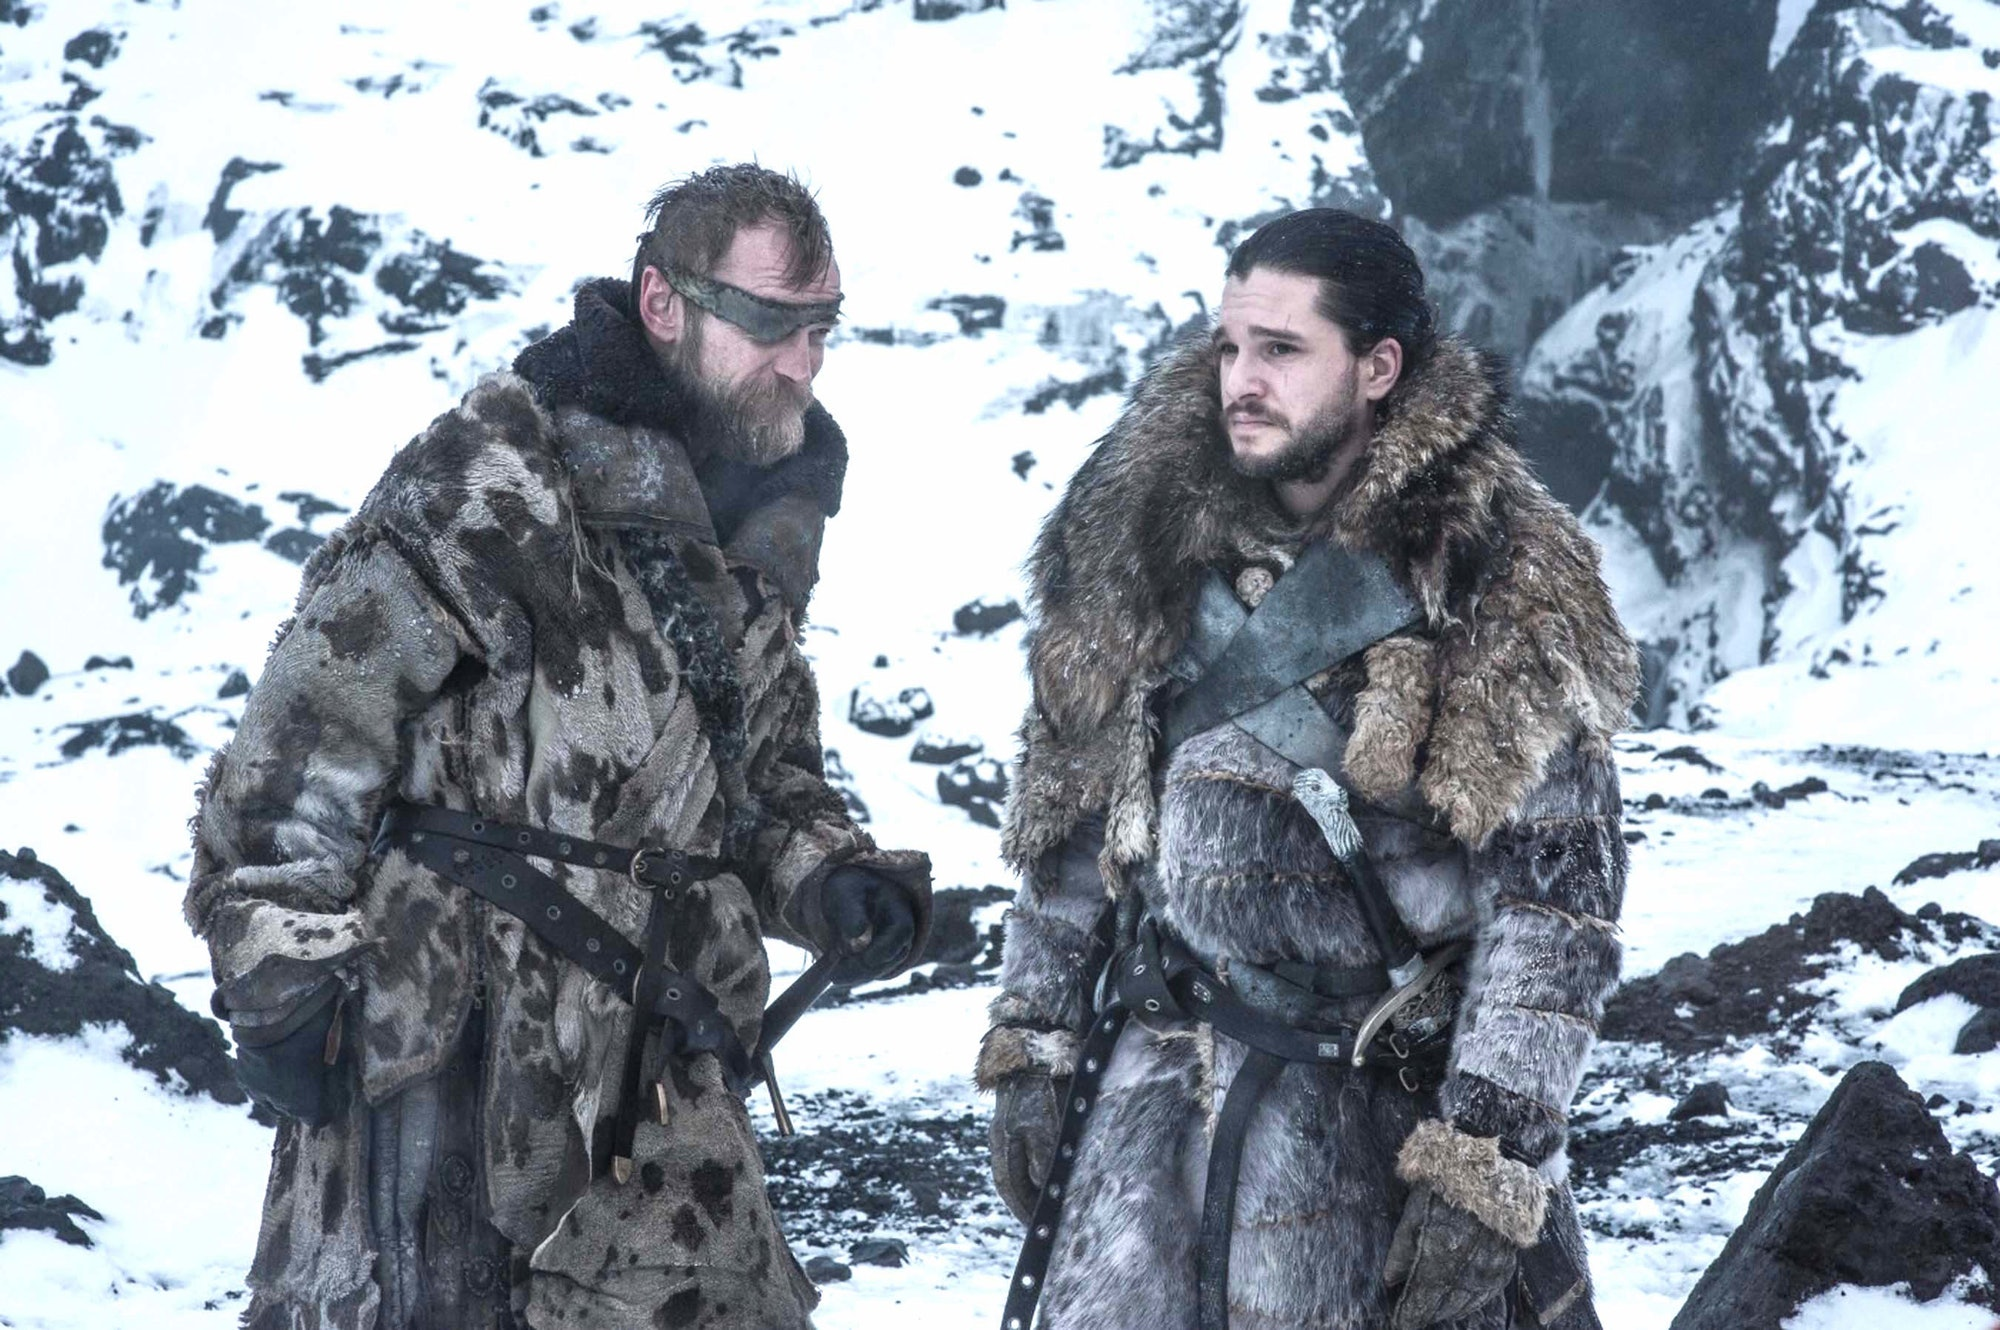 """Kit Harington as Jon Snow and Richard Dormer as Beric Dondarrion in 'Game of Thrones' Season 7 episode 6, """"Beyond the Wall"""""""